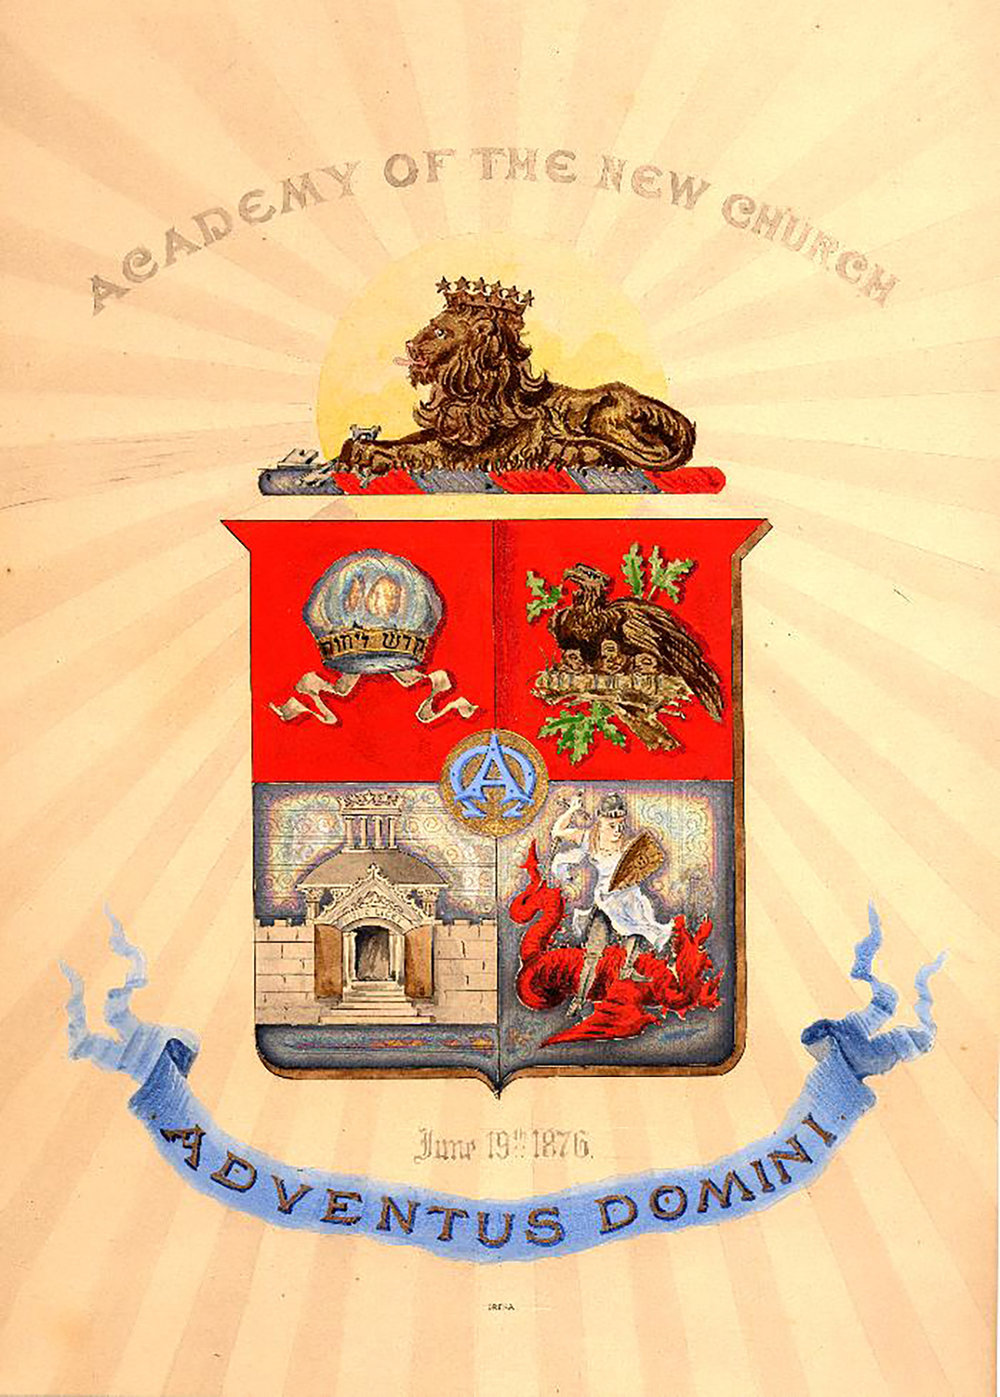 Figure 6: A formal design for the Academy seal was produced by the Dreka engraving house in Philadelphia. It was completed in 1878.